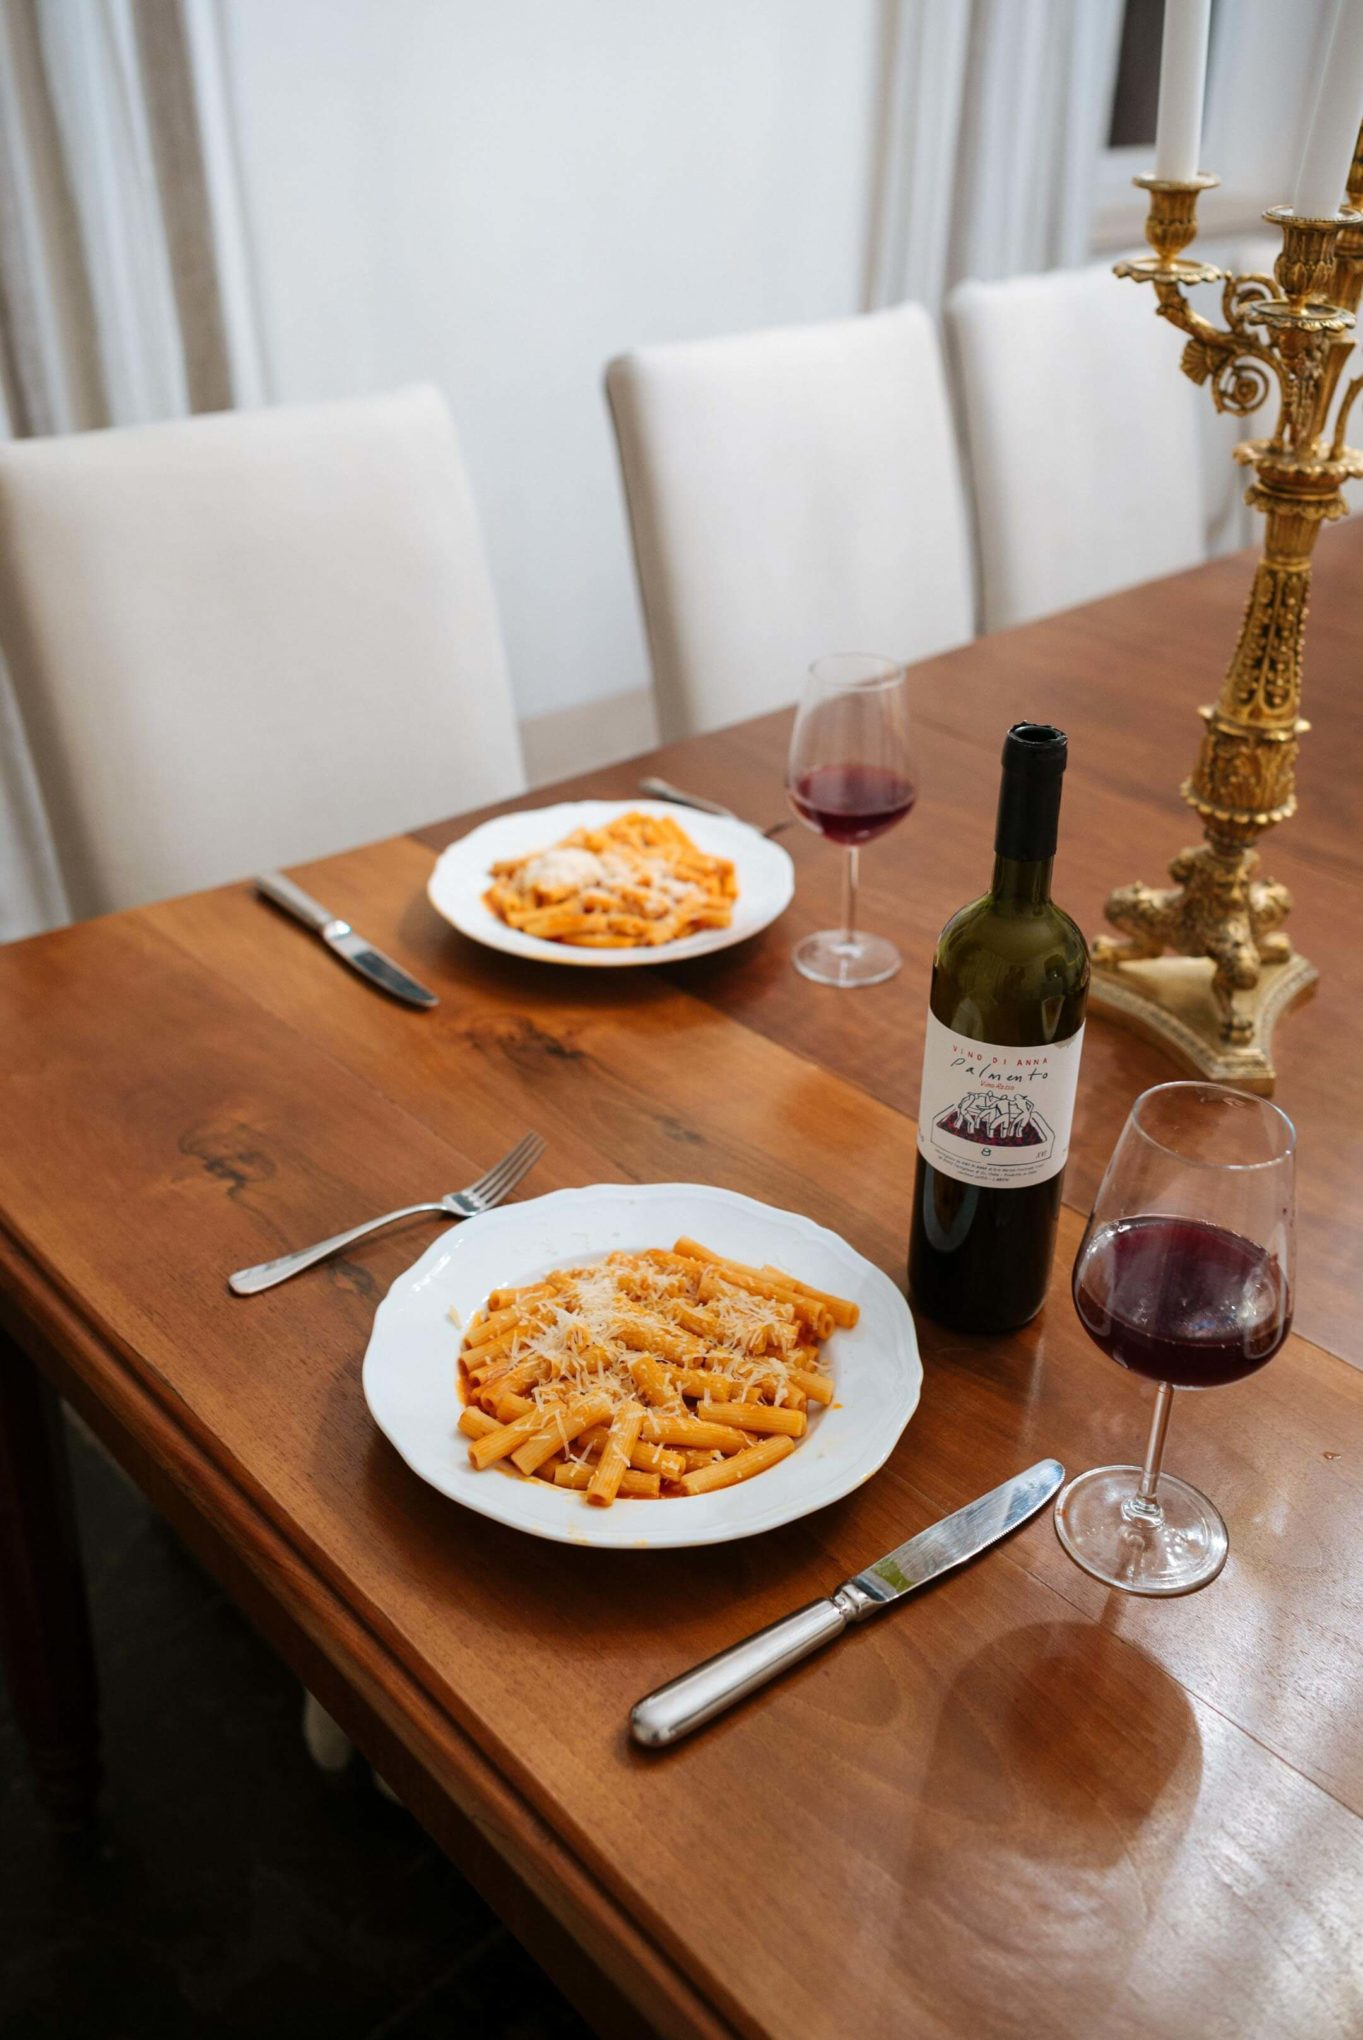 The Taste Edit makes pasta for dinner with red wine at Don Venerando in Sicily, Italy.